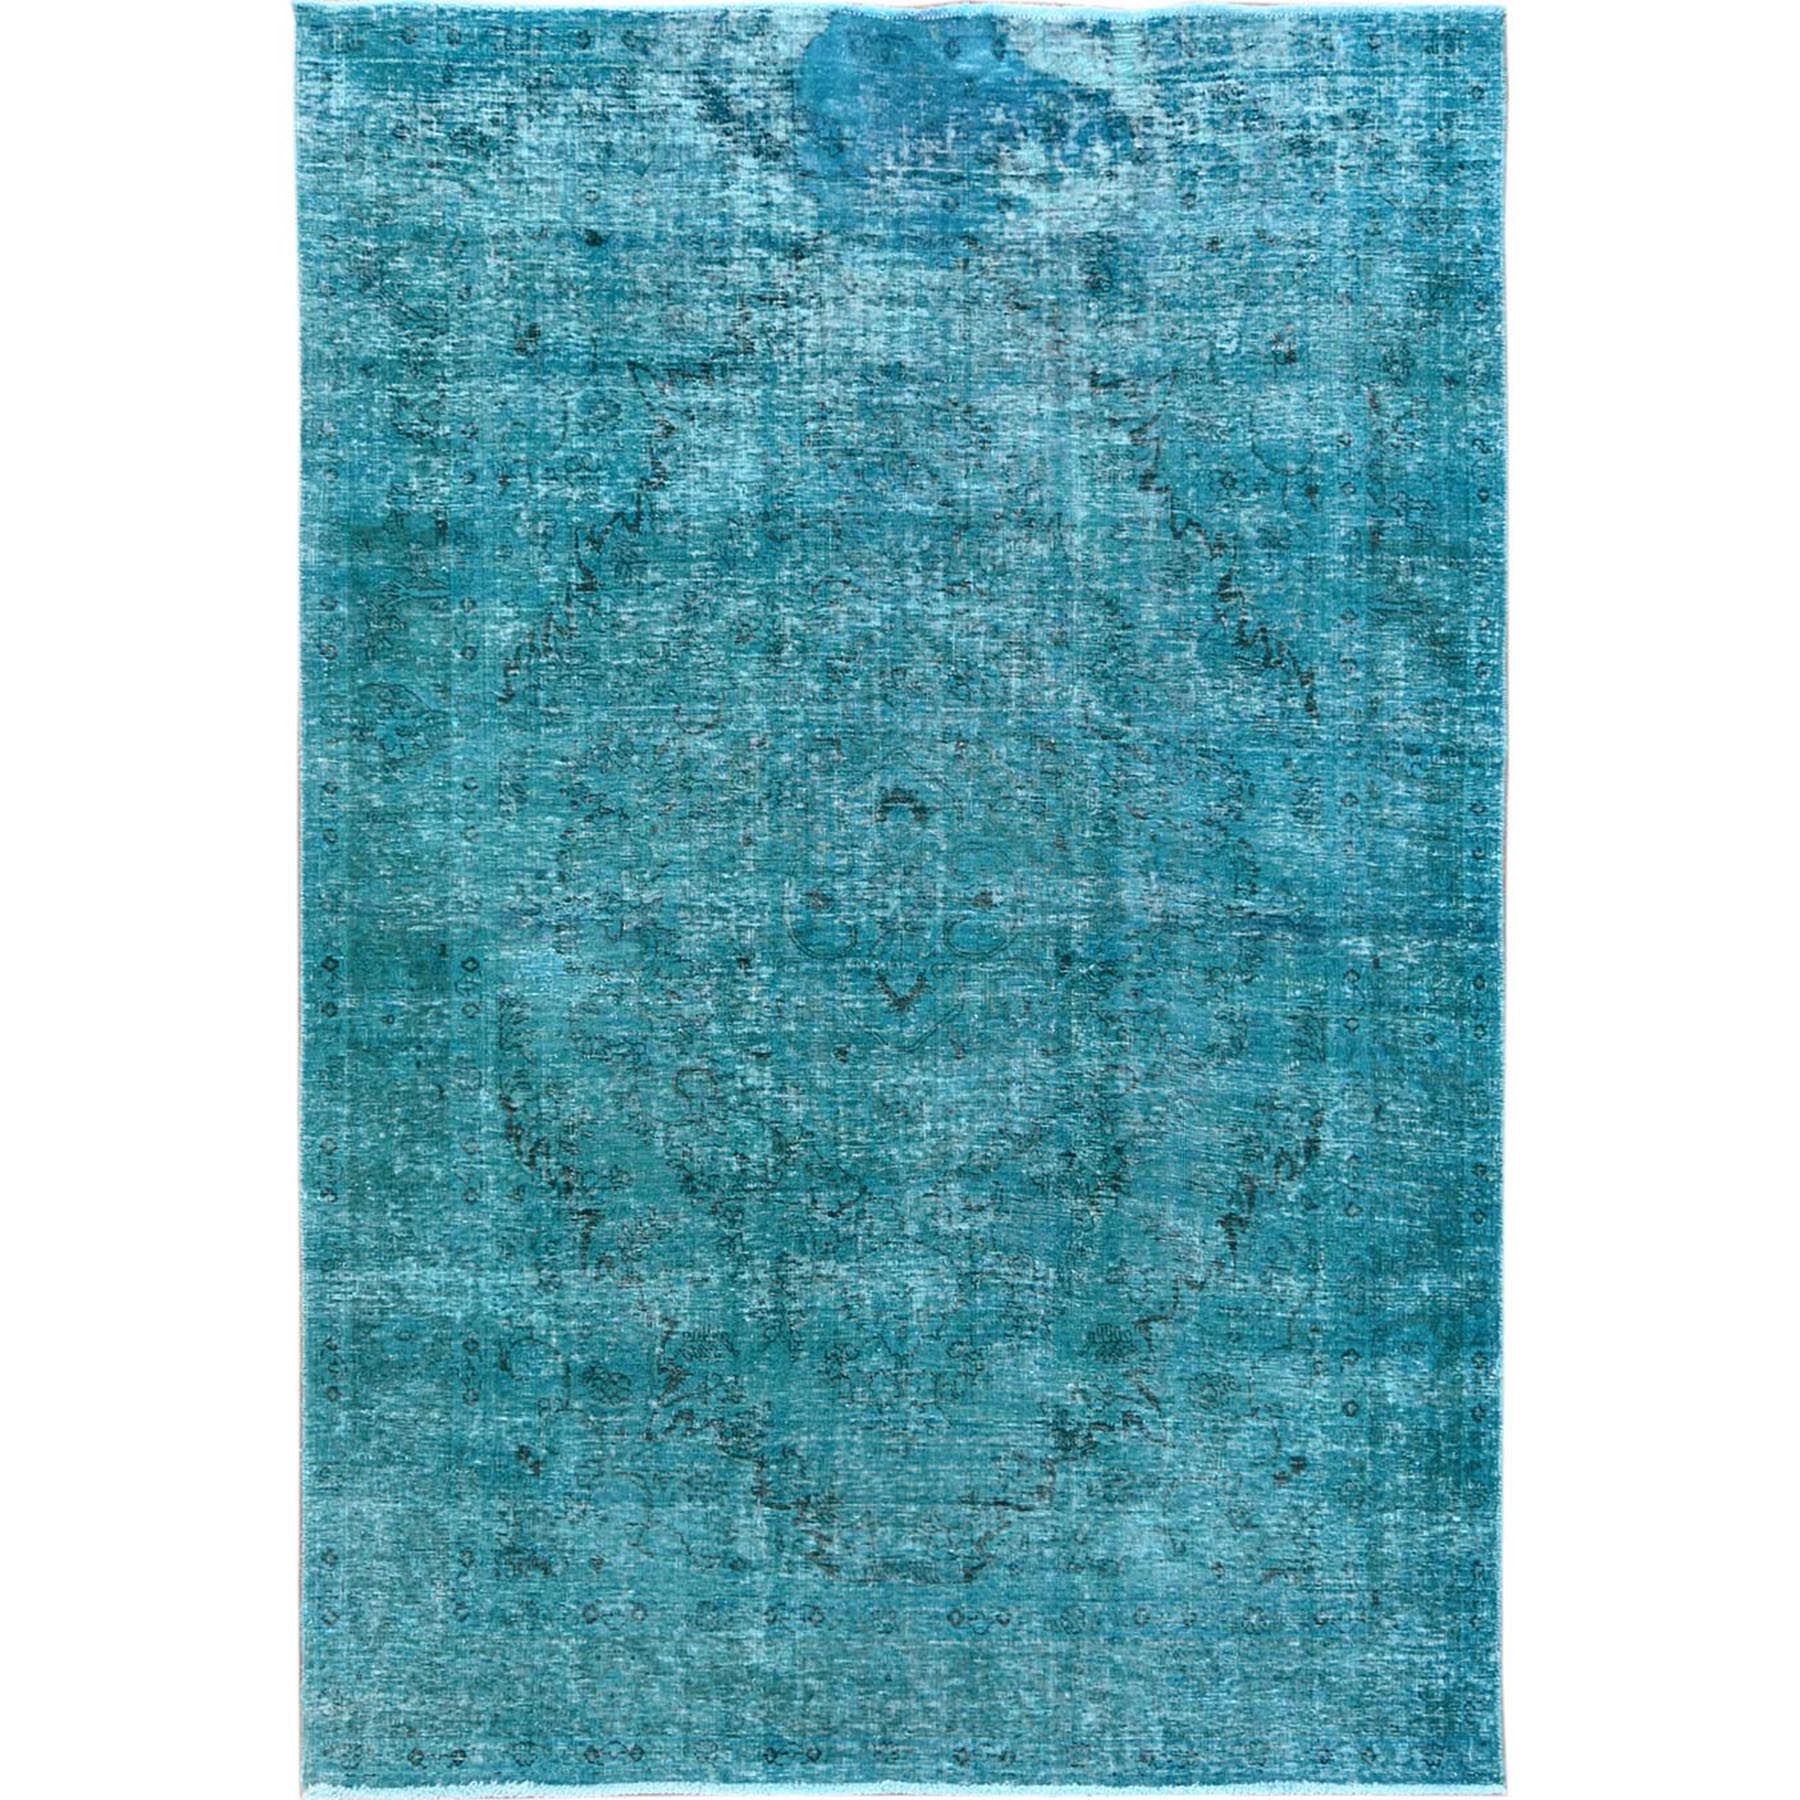 "6'4""x9'4"" Teal Persian Tabriz With Medallion Design Old Distressed Shabby Chic Pure Wool Clean Hand Woven Oriental Rug"